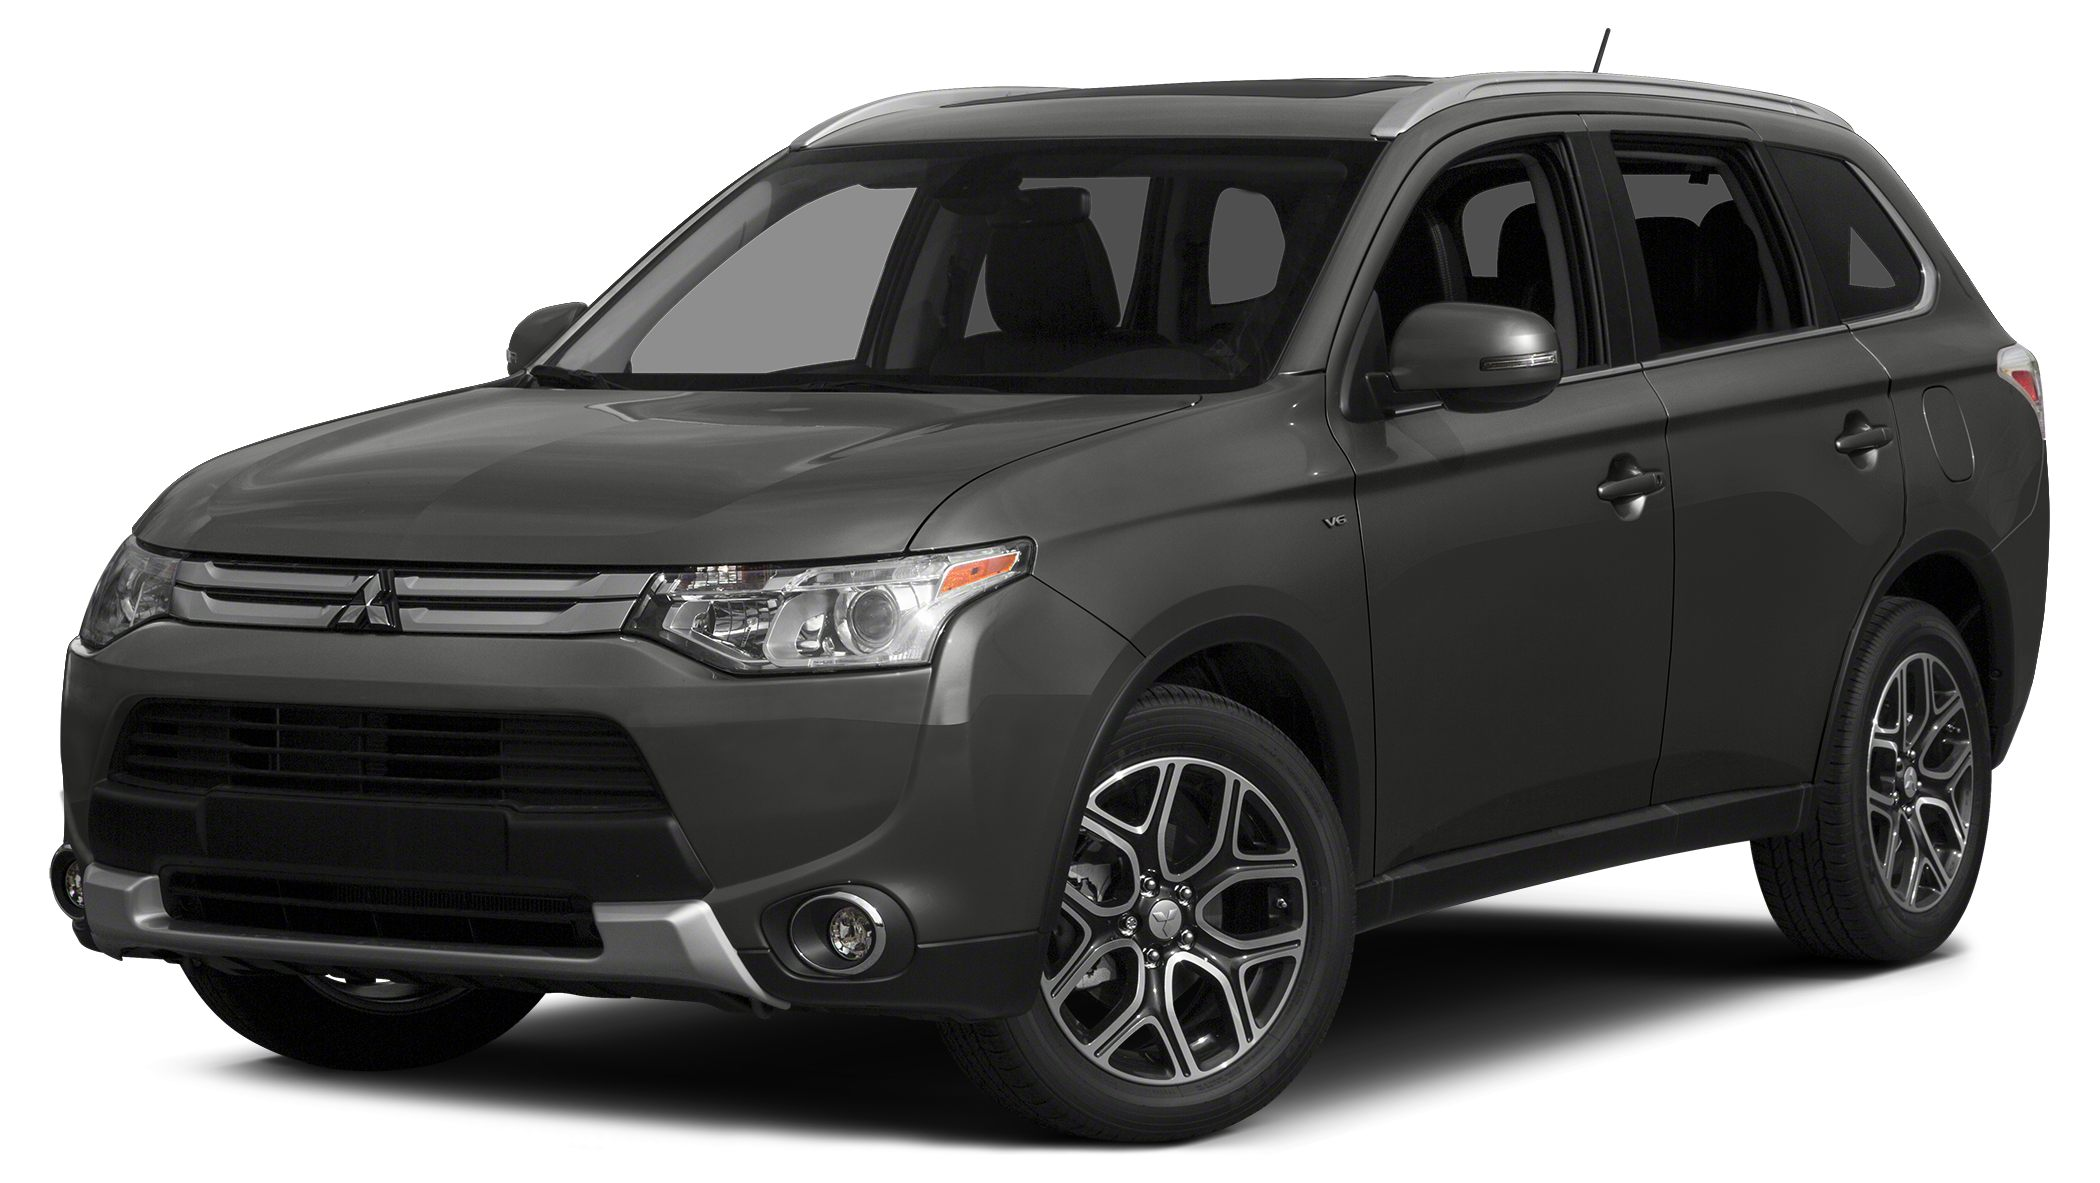 2015 Mitsubishi Outlander SE You cant go wrong with this amazing 2015 Mitsubishi Outlander SE whic